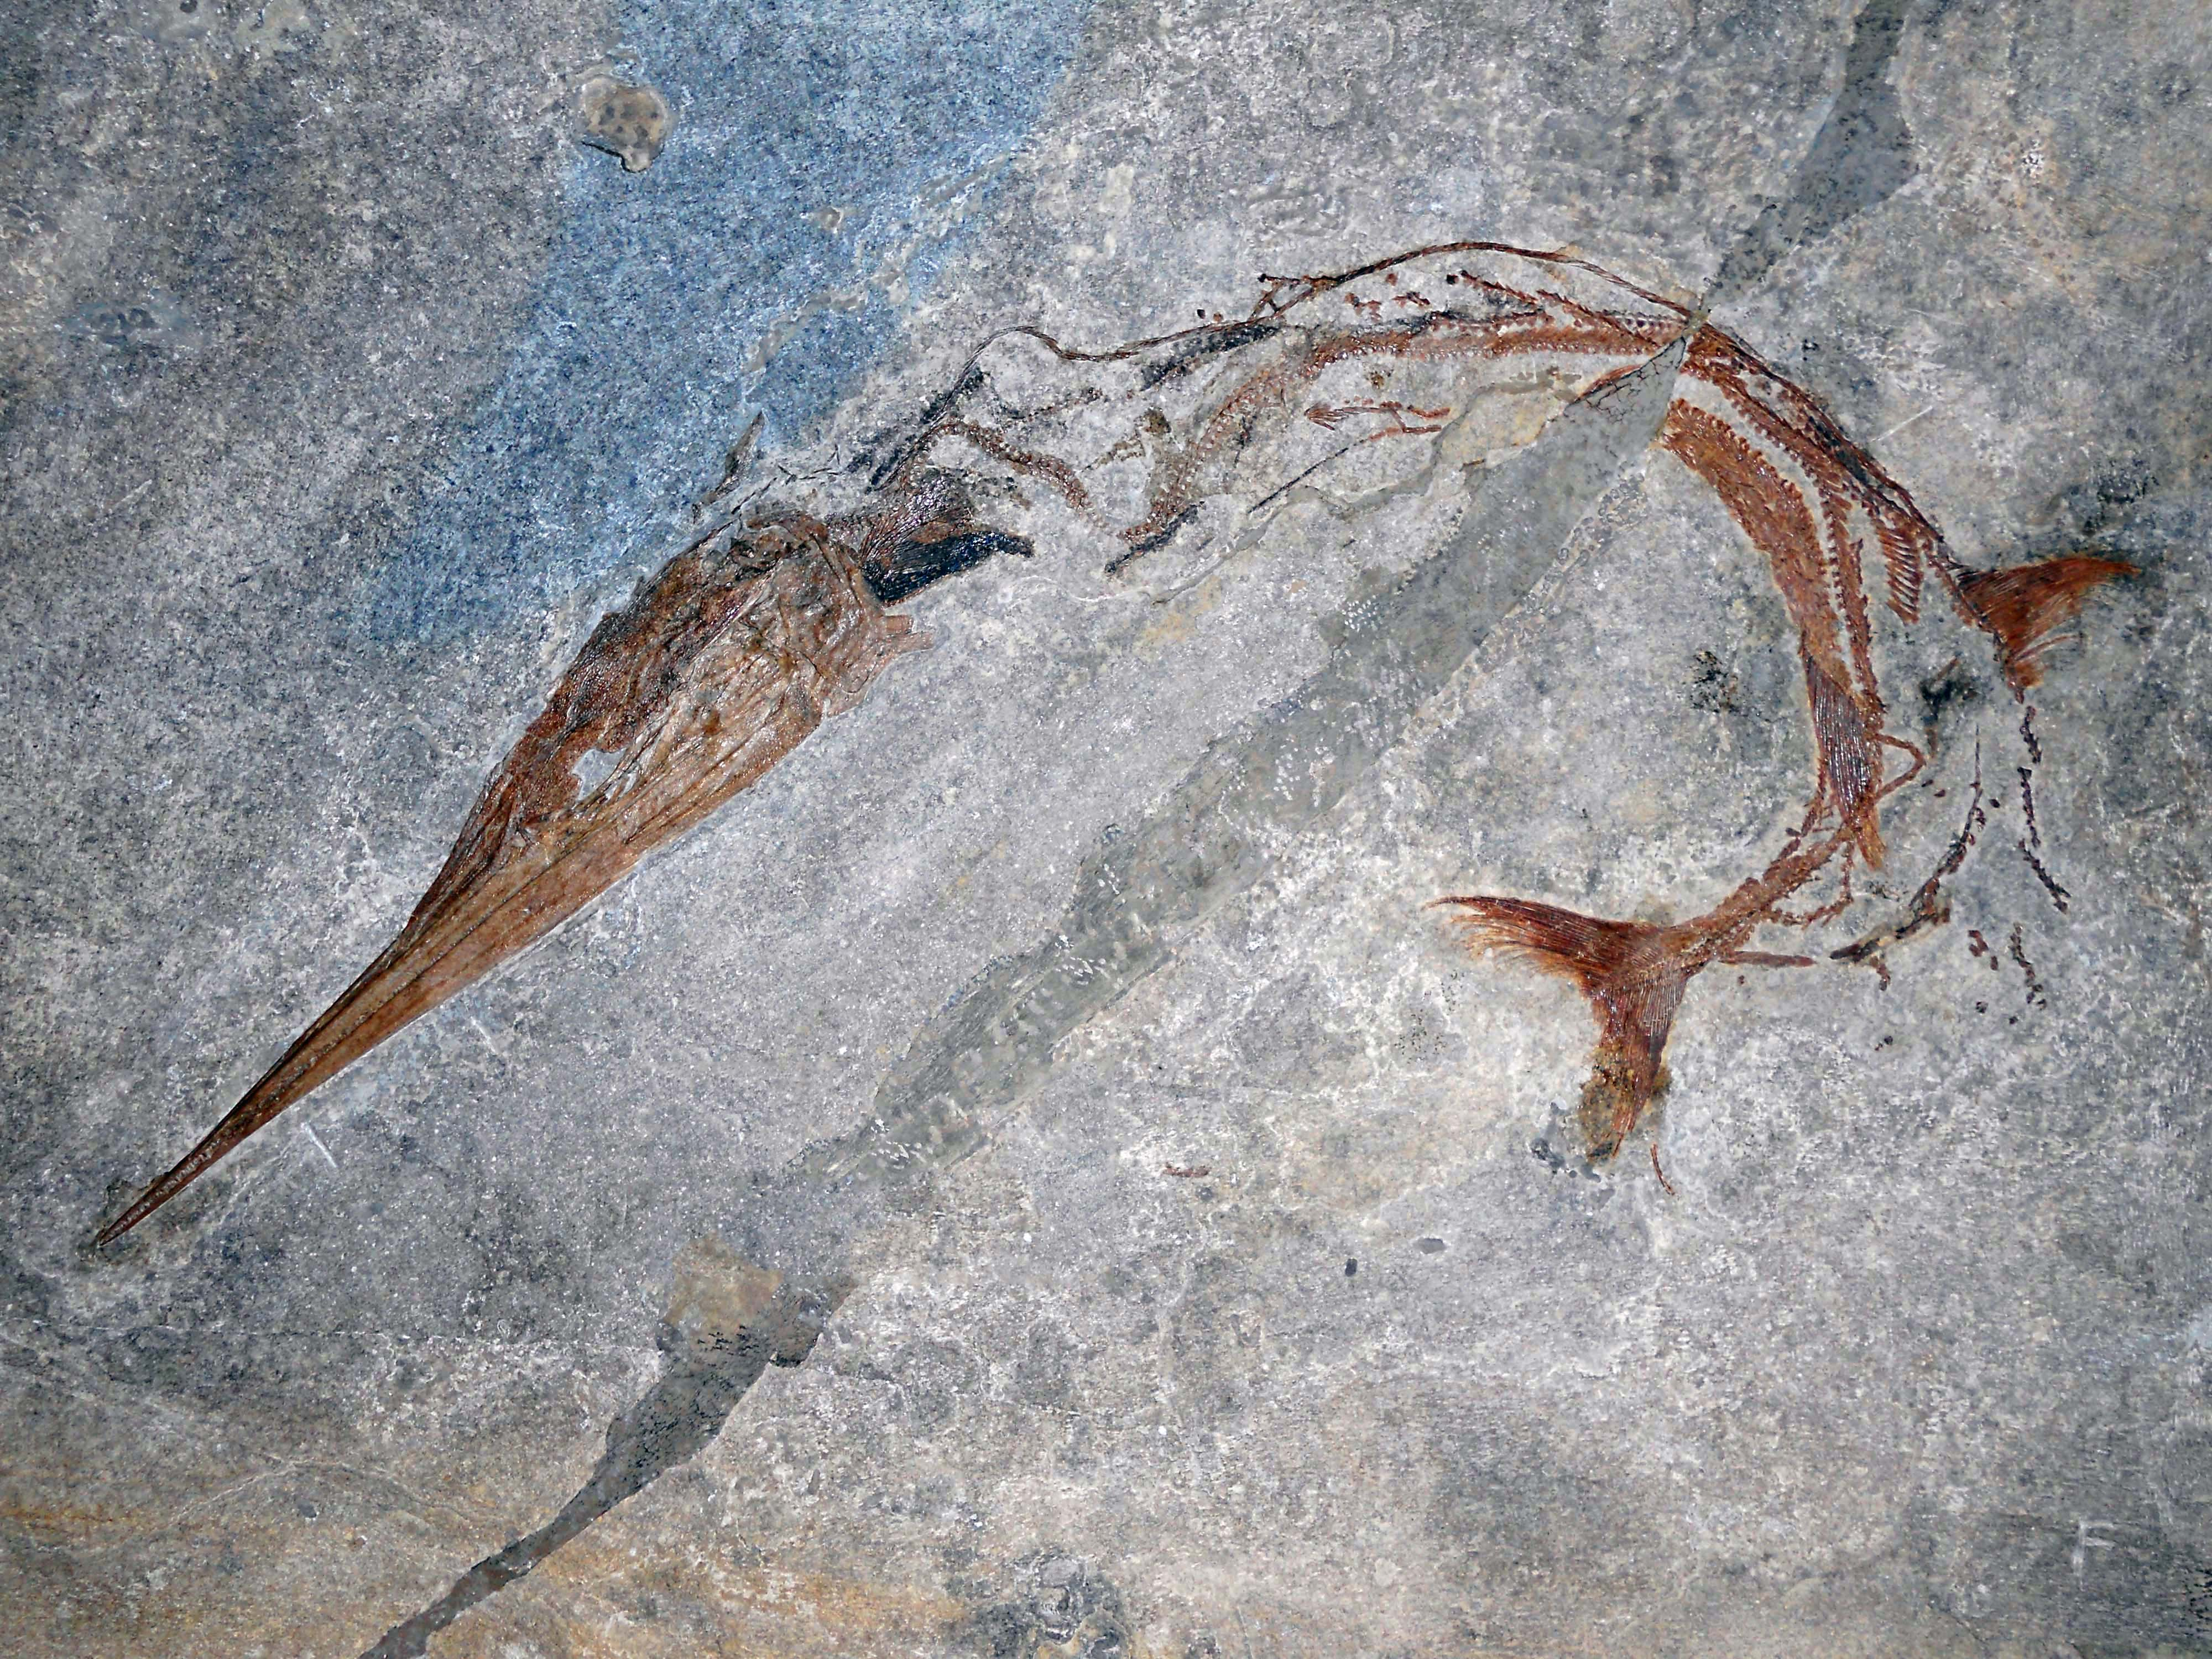 The 240 million year old fossil fish, Saurichthys curionii, a primitive predatory fish with a unique backbone structure. Image Credit: University of Zurich.